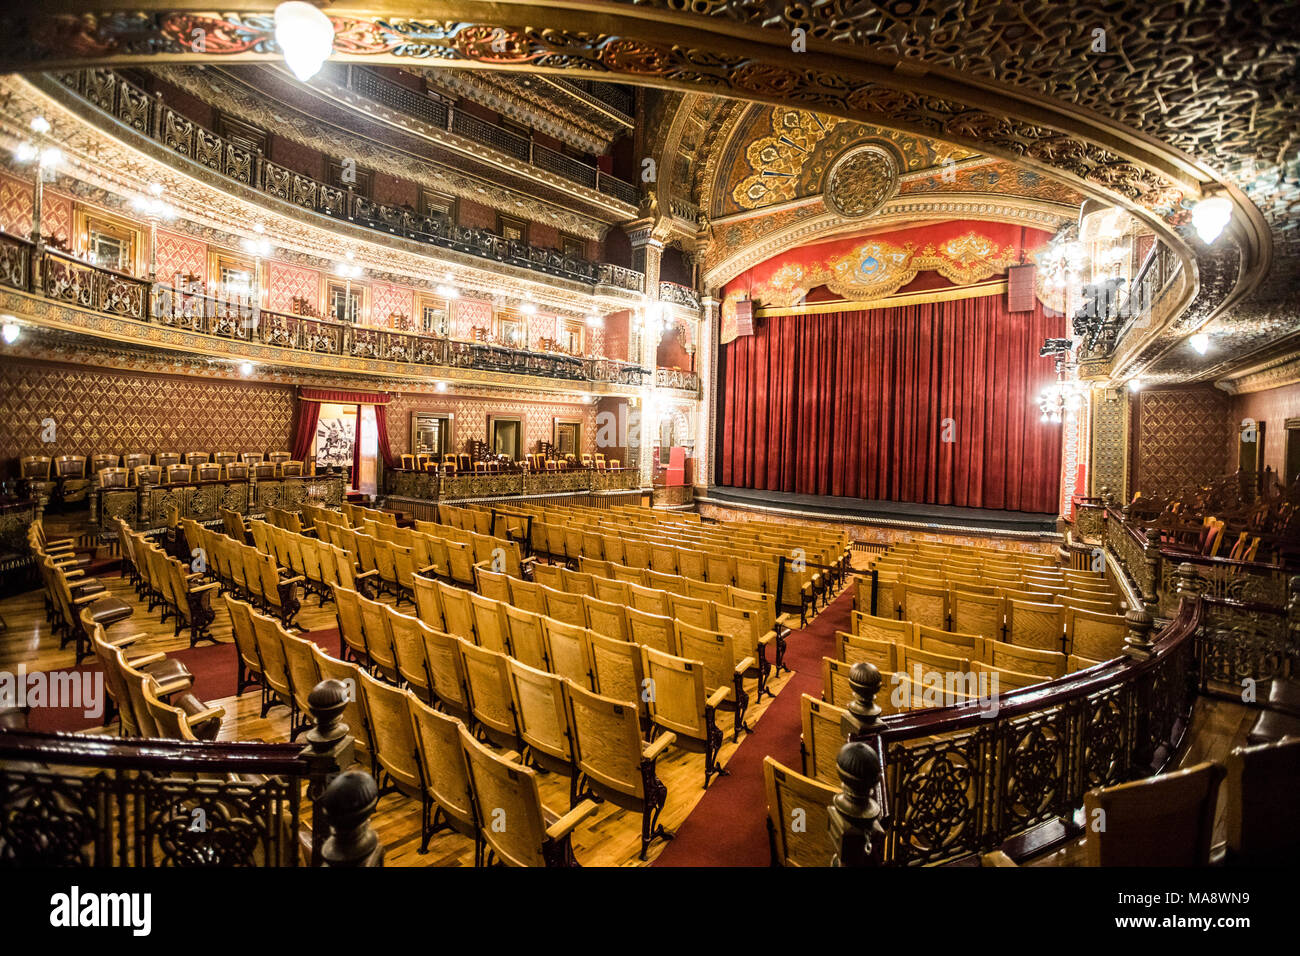 Inside historic Teatro Juarez, Zona Central, Guanajuato, Mexico Stock Photo